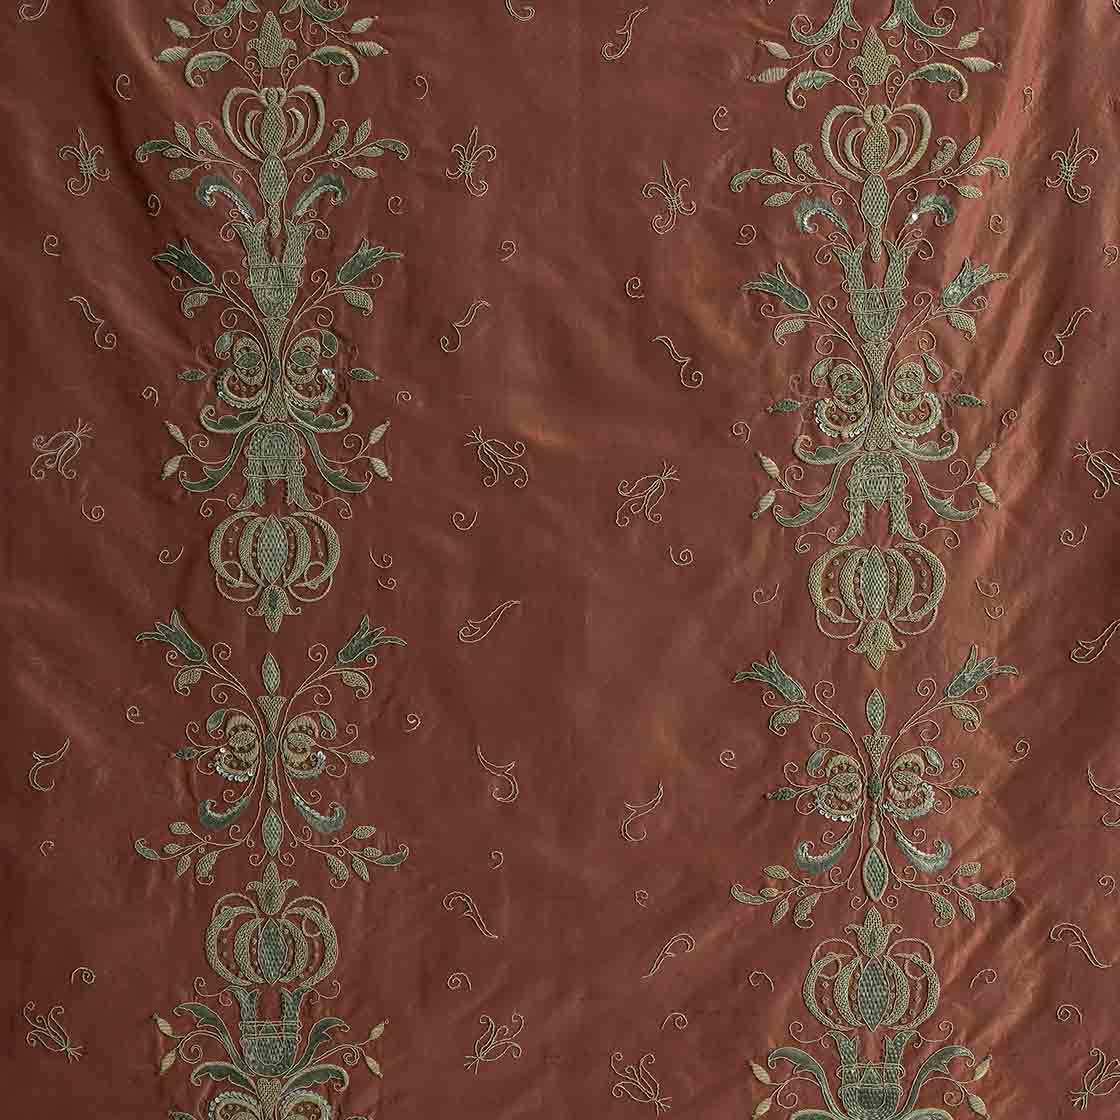 Zola - On Empire Tafetta Burgundy - Beaumont & Fletcher - Beaumont & Fletcher